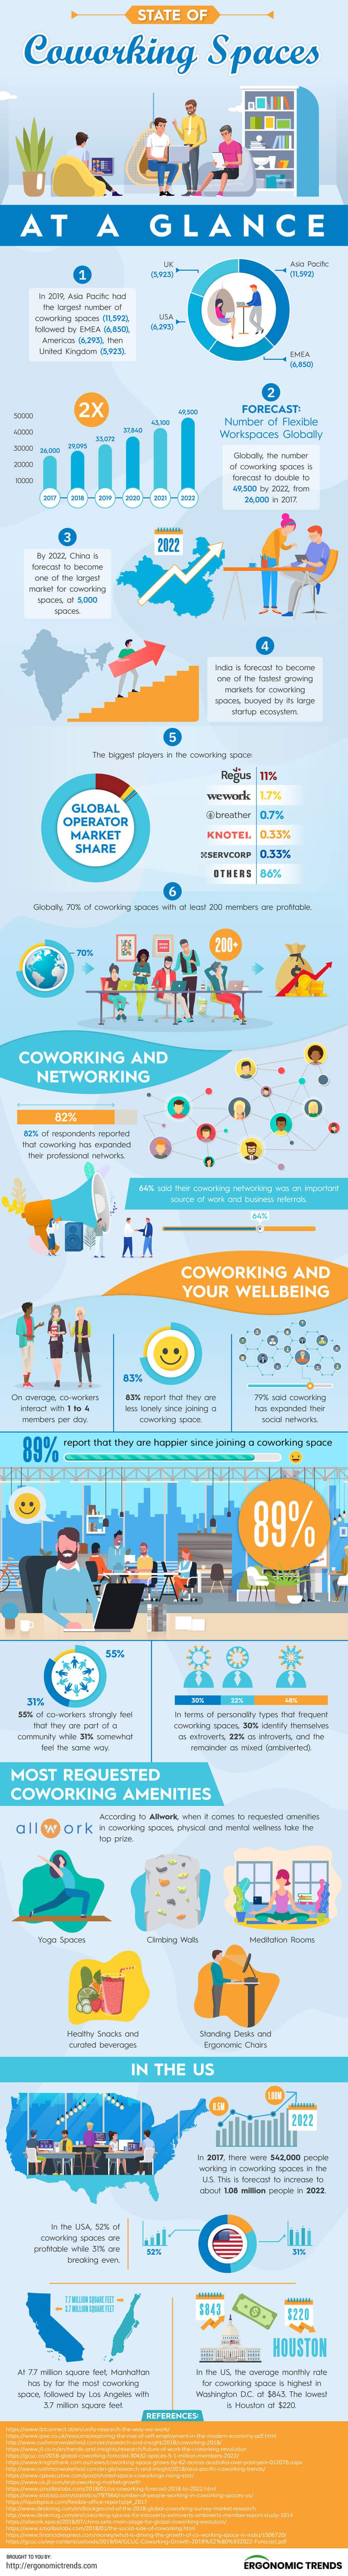 State-of-Coworking-Spaces-at-a-Glance-infographic-plaza